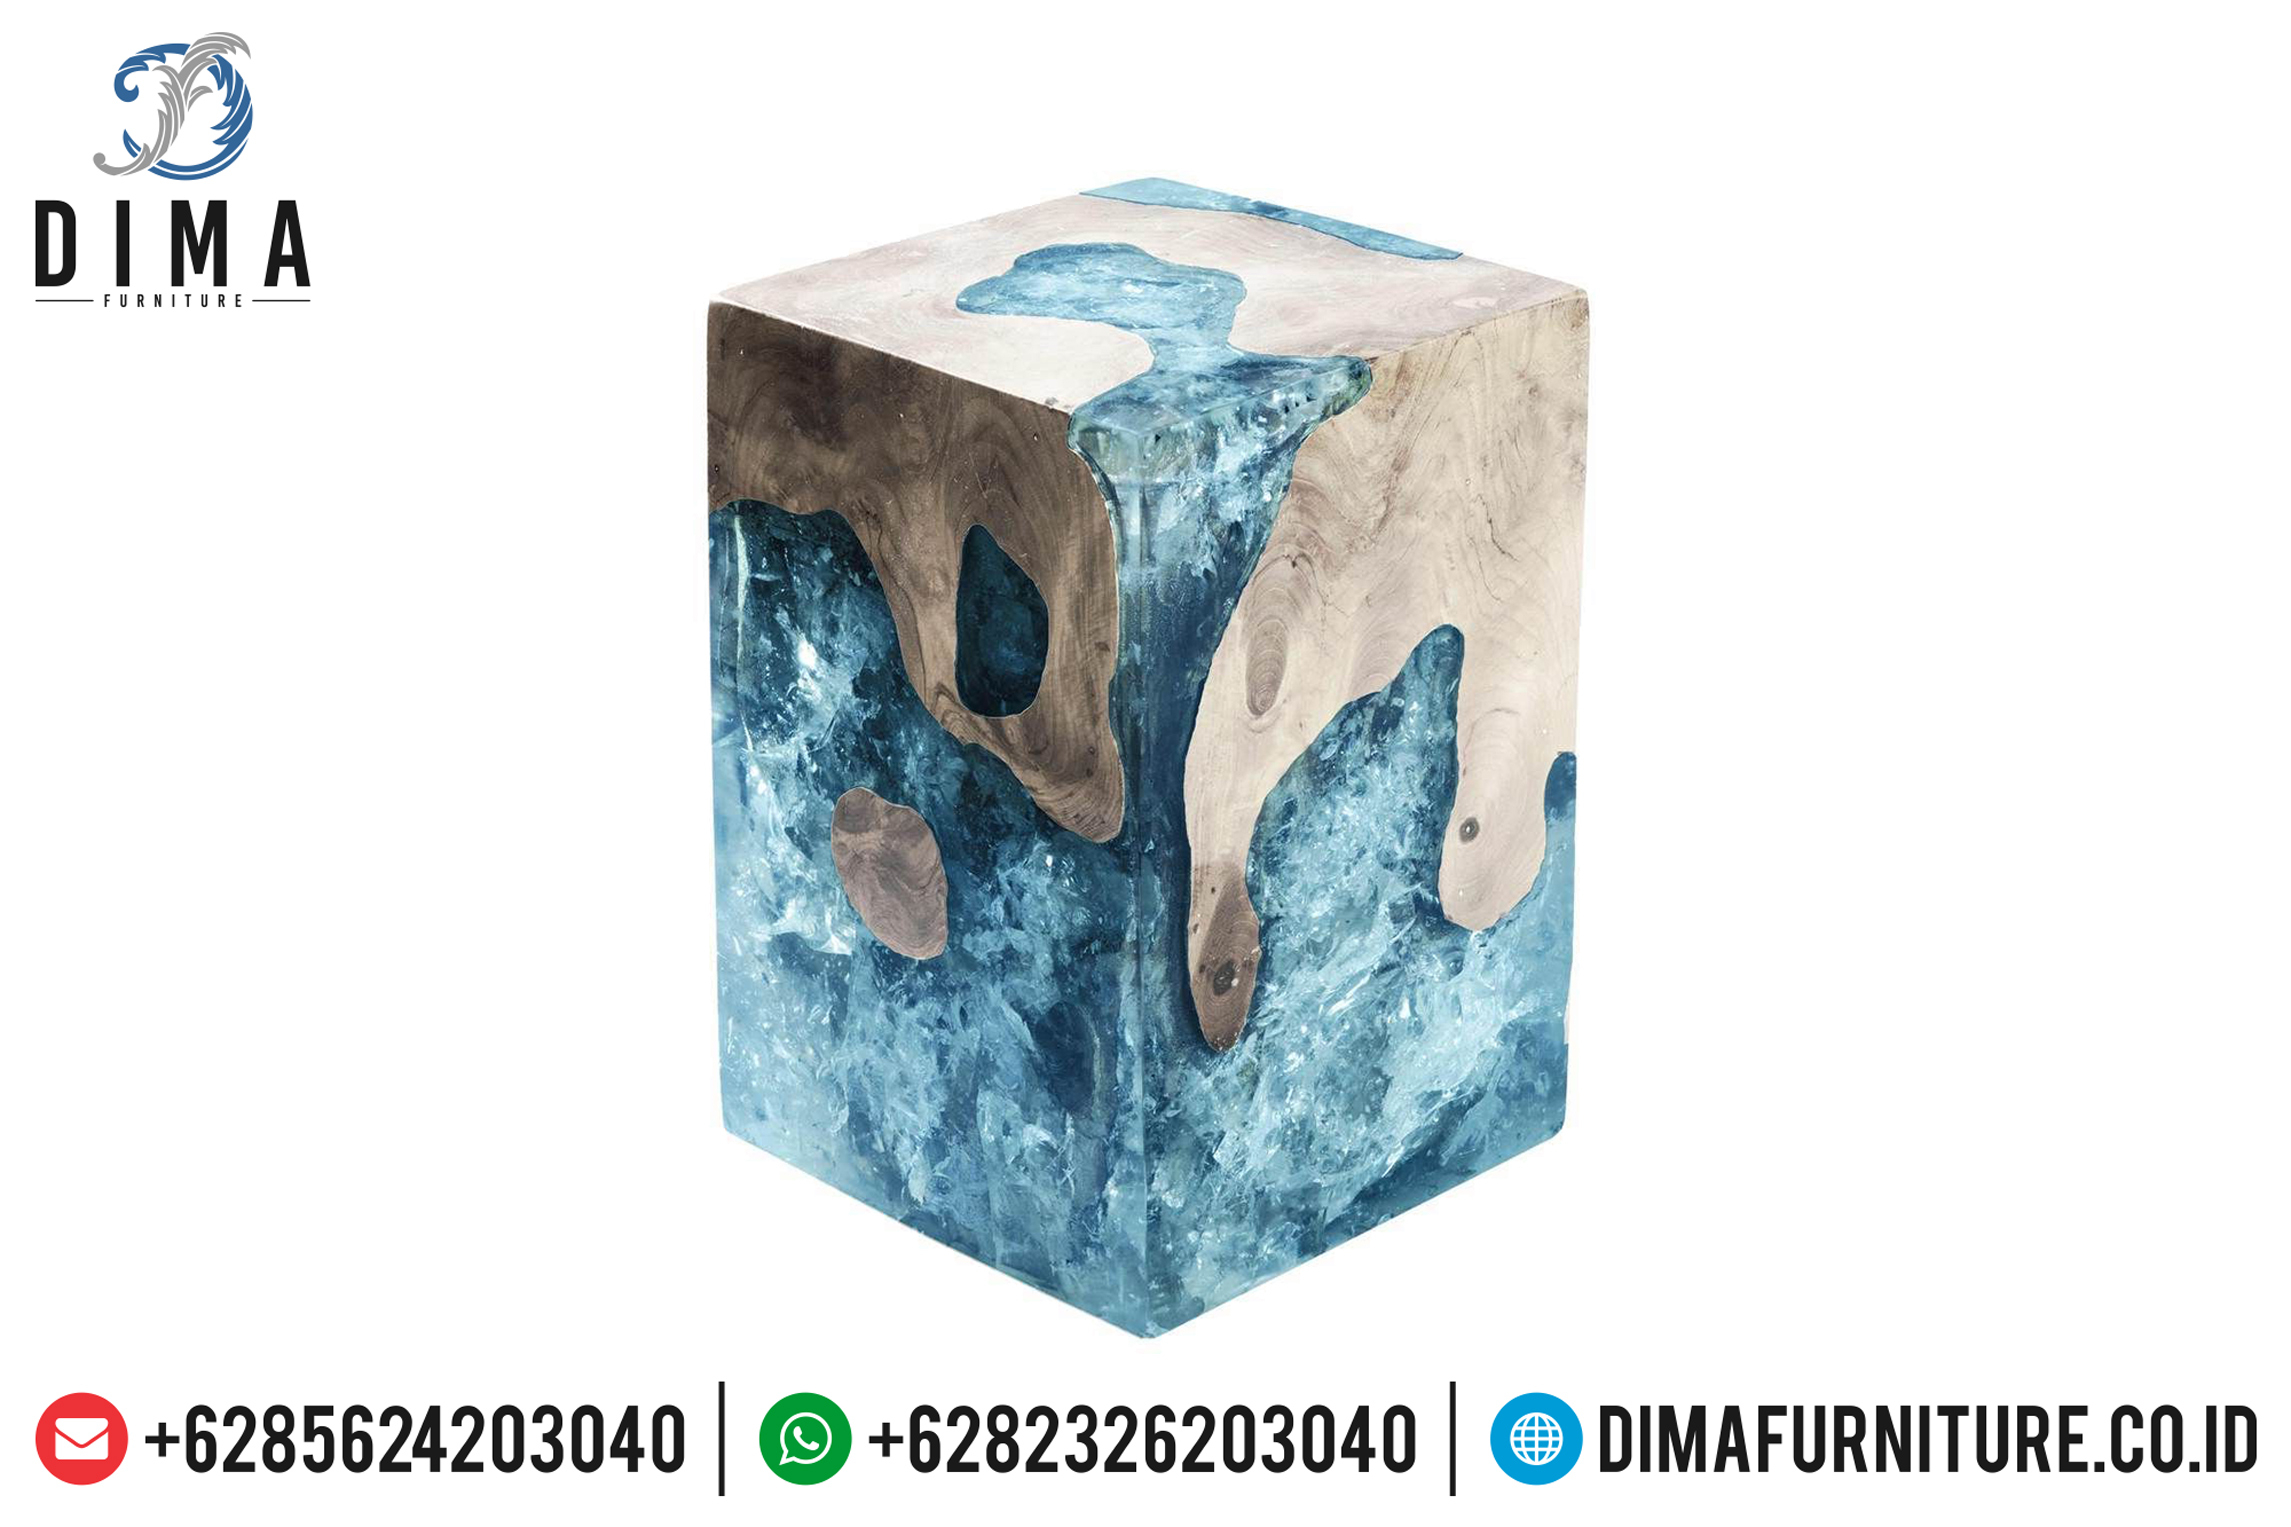 Resin Furniture Indonesia, Stool Resin Terbaru, Meja Resin Minimalis ST-0644